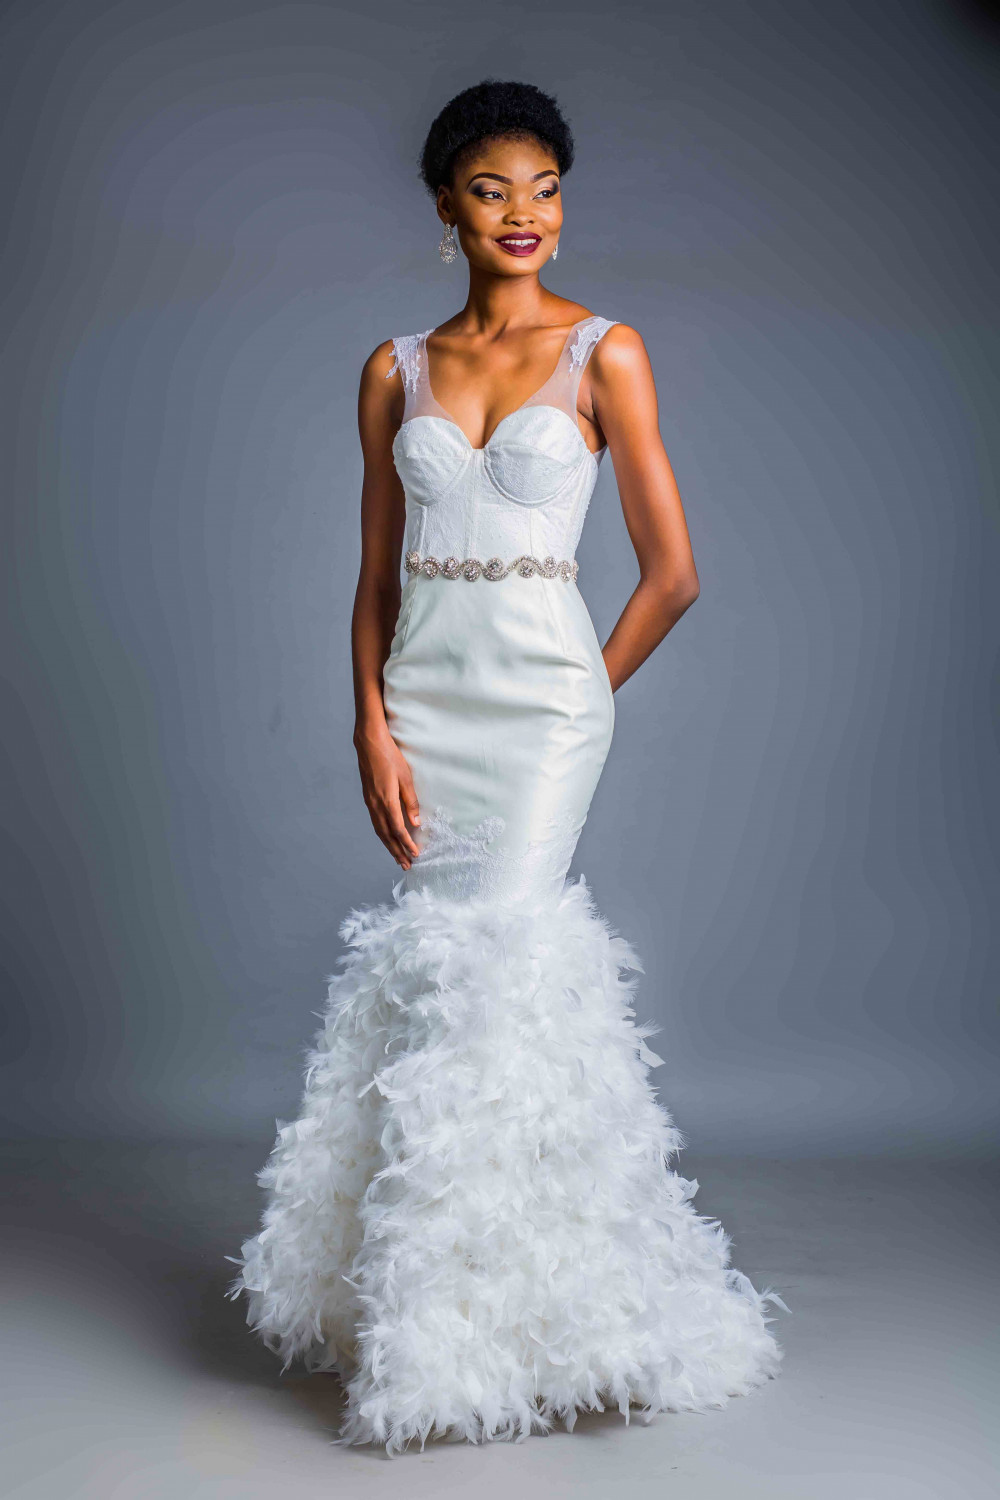 Hollerose Designs 2016 Collection Bridal 6